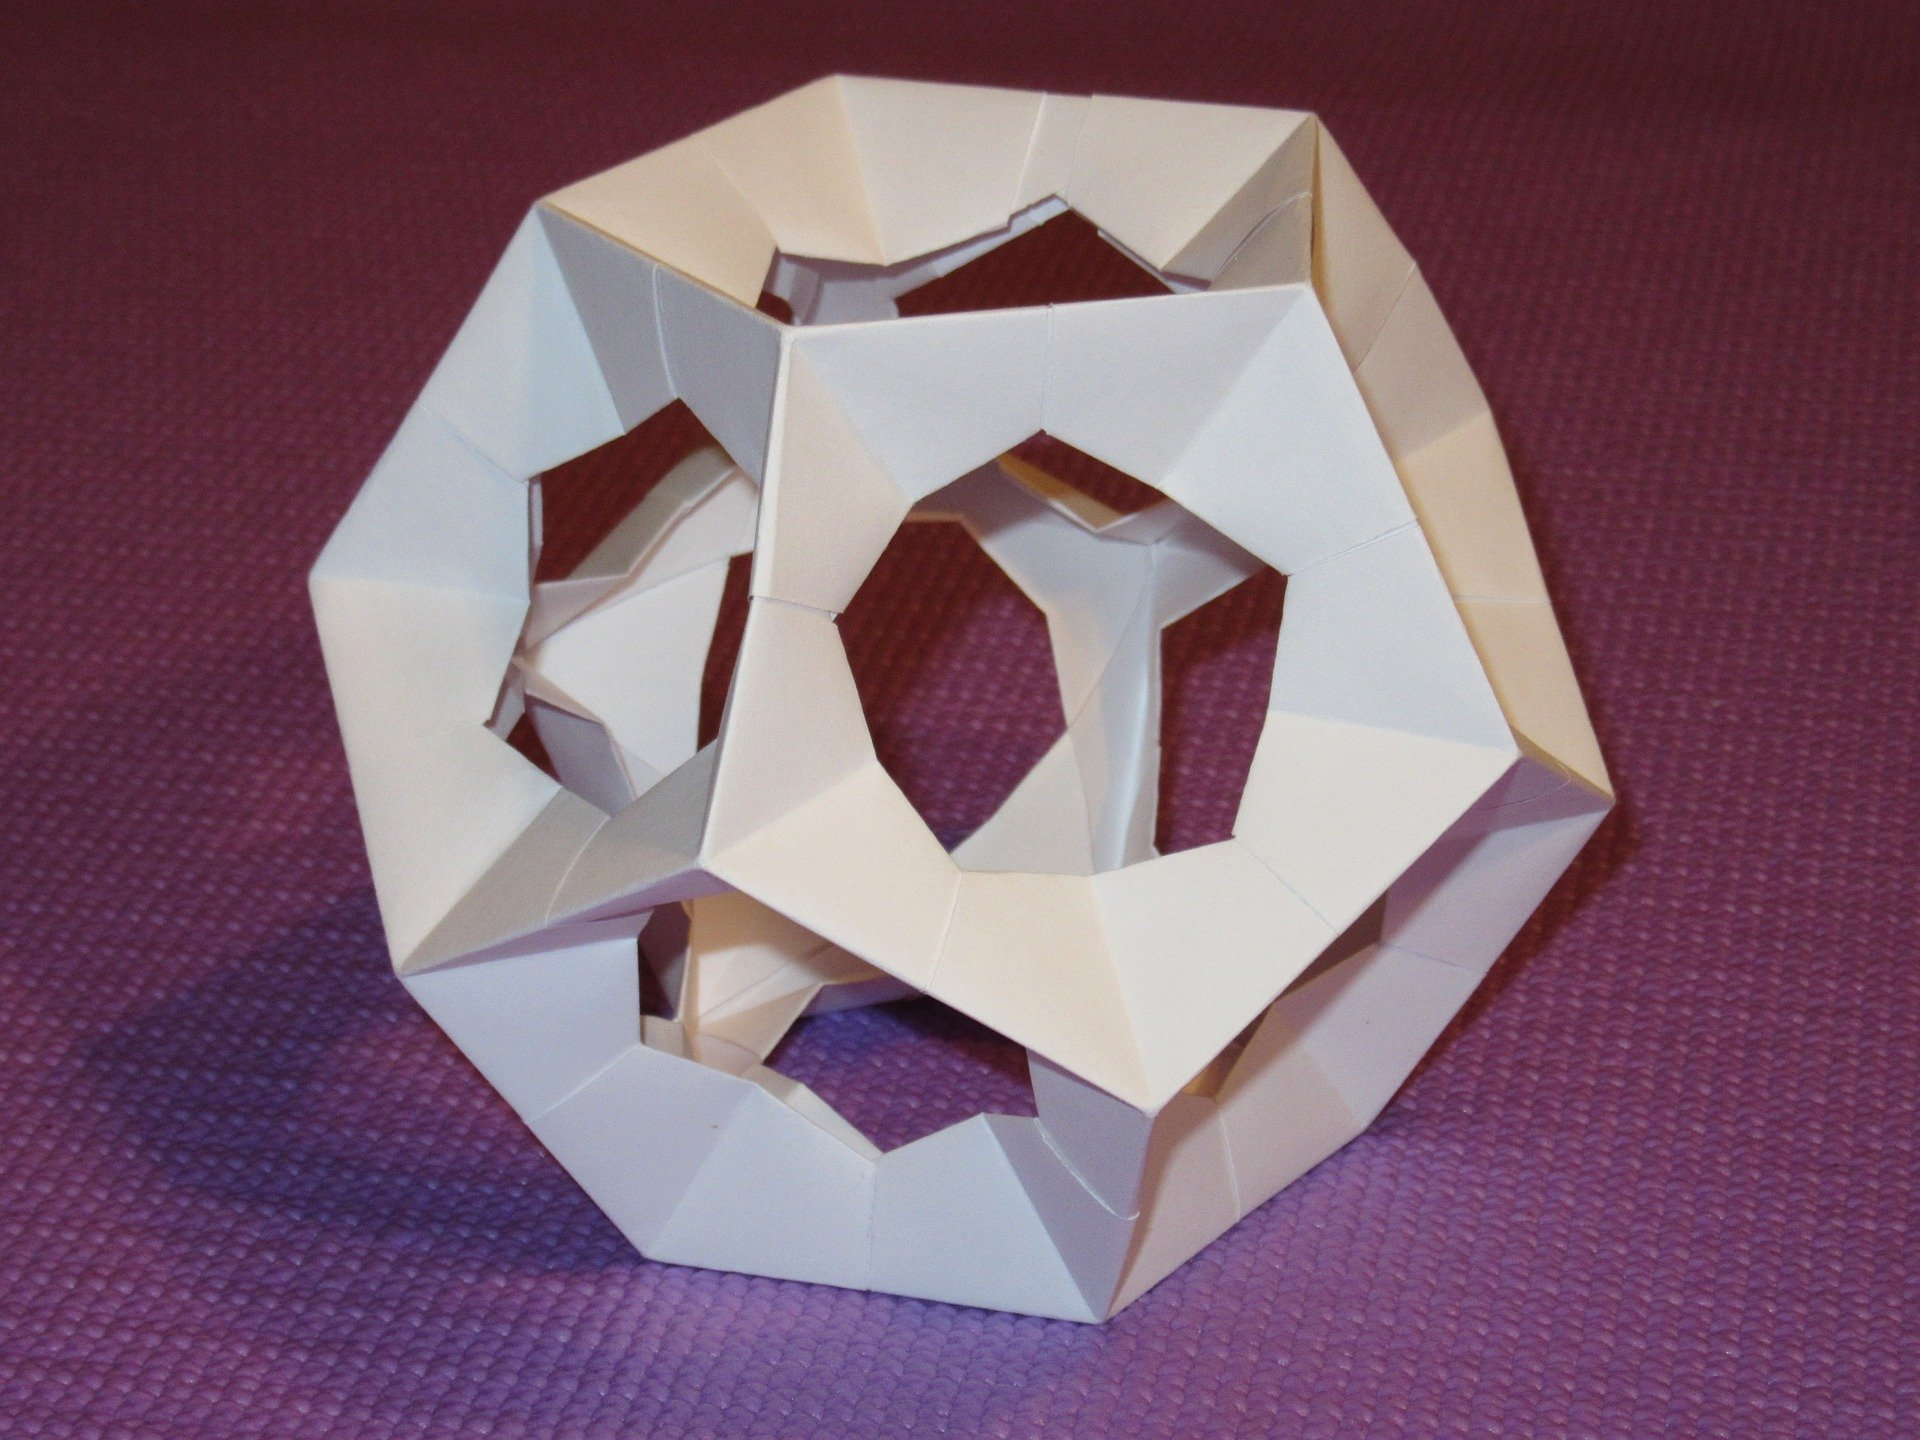 dodecahedron-595722_1920